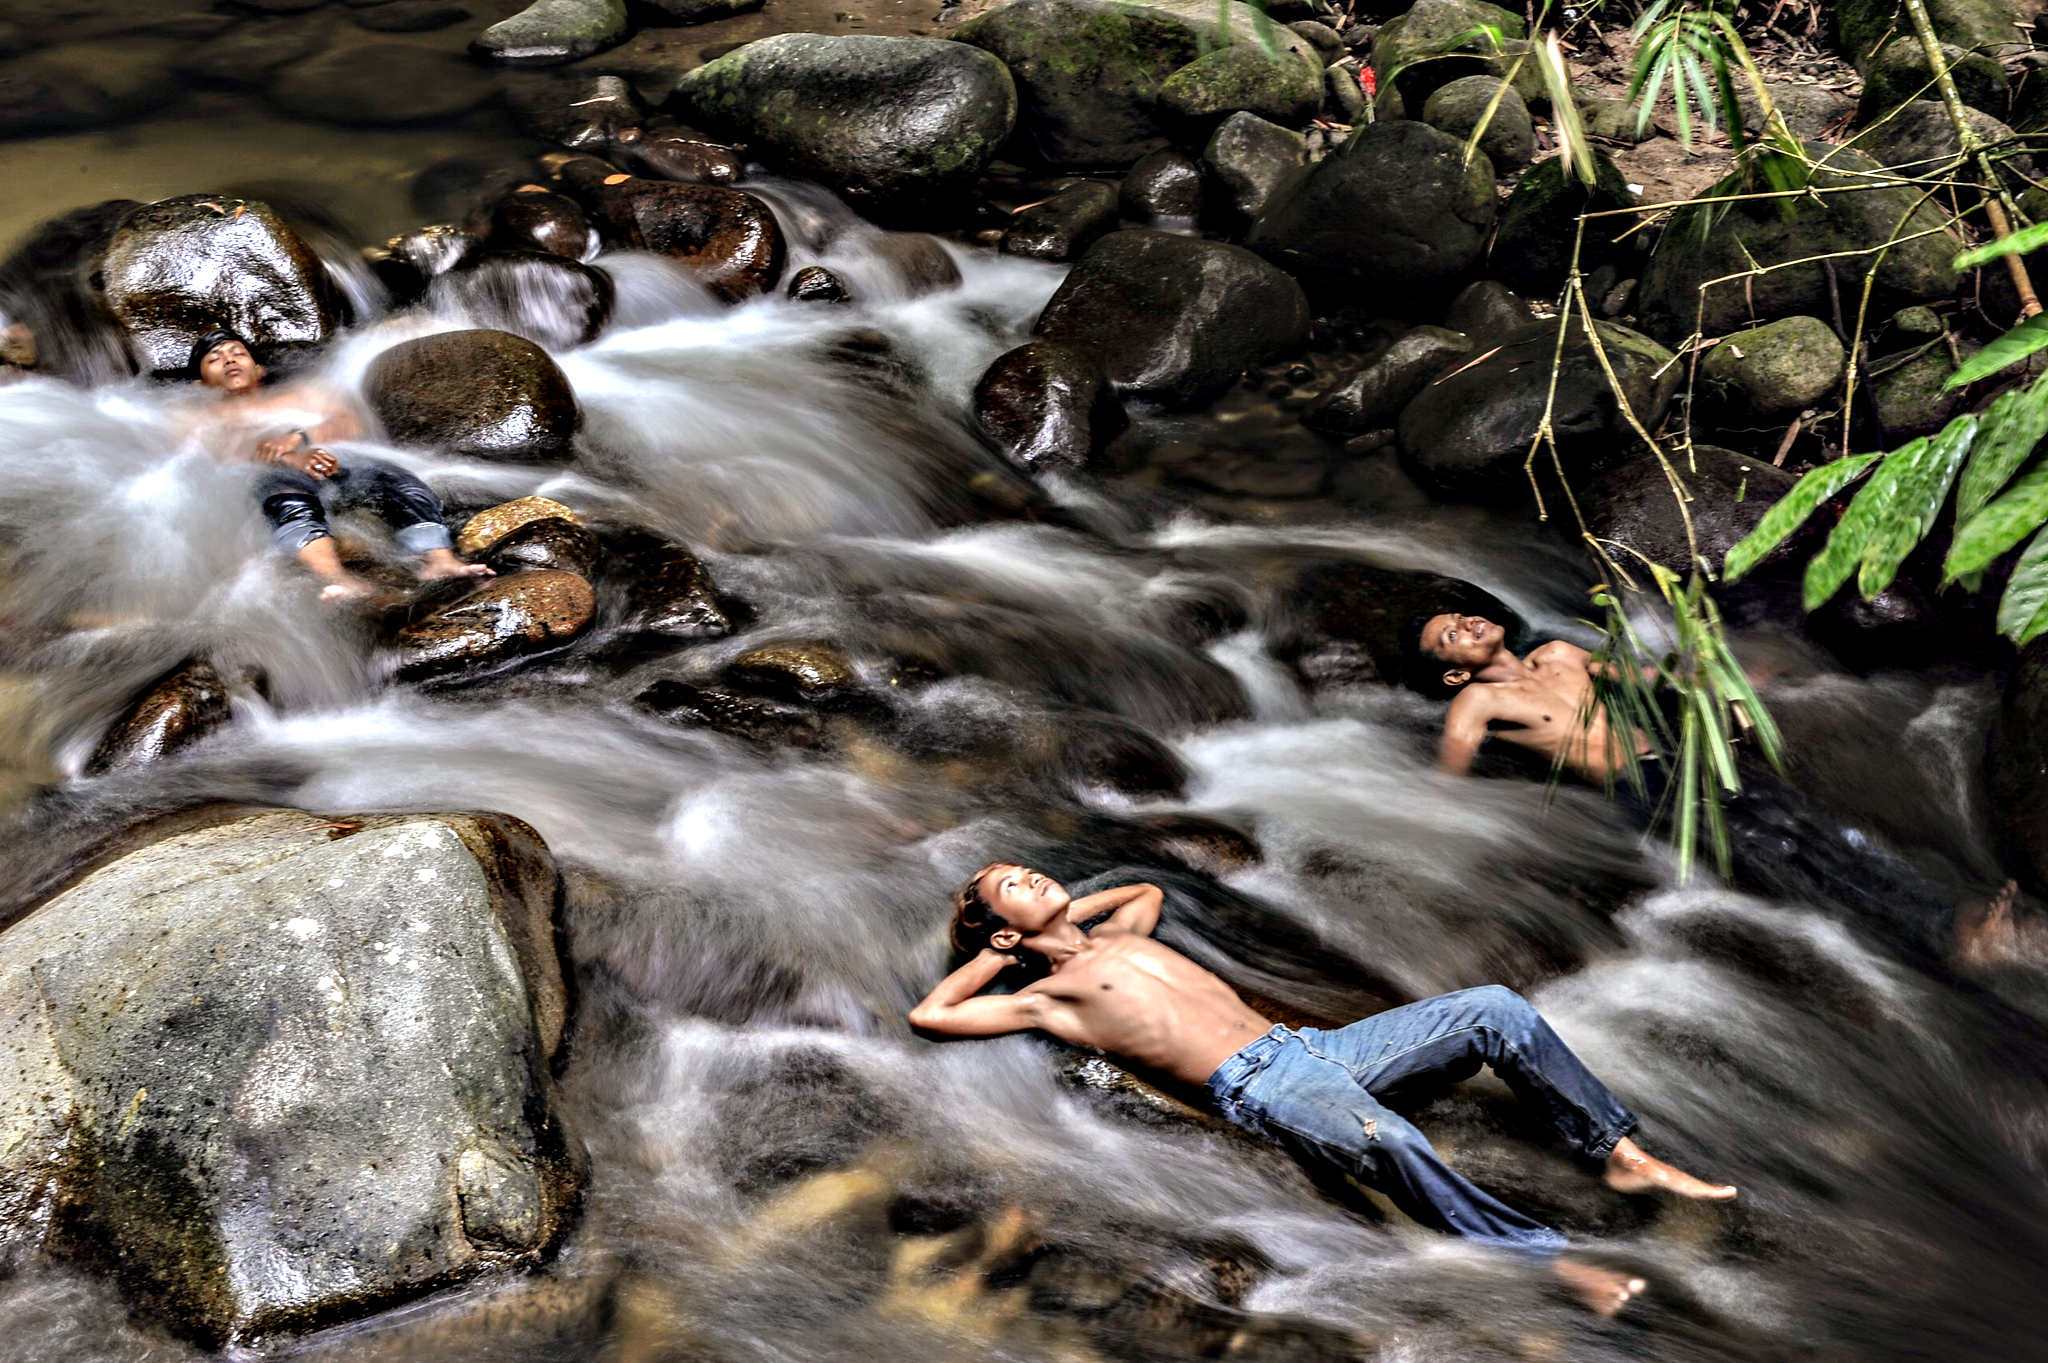 Malaysian youths cool off in a river as schools remain closed due to hazy conditions in Hulu Langat on Tuesday. Malaysia